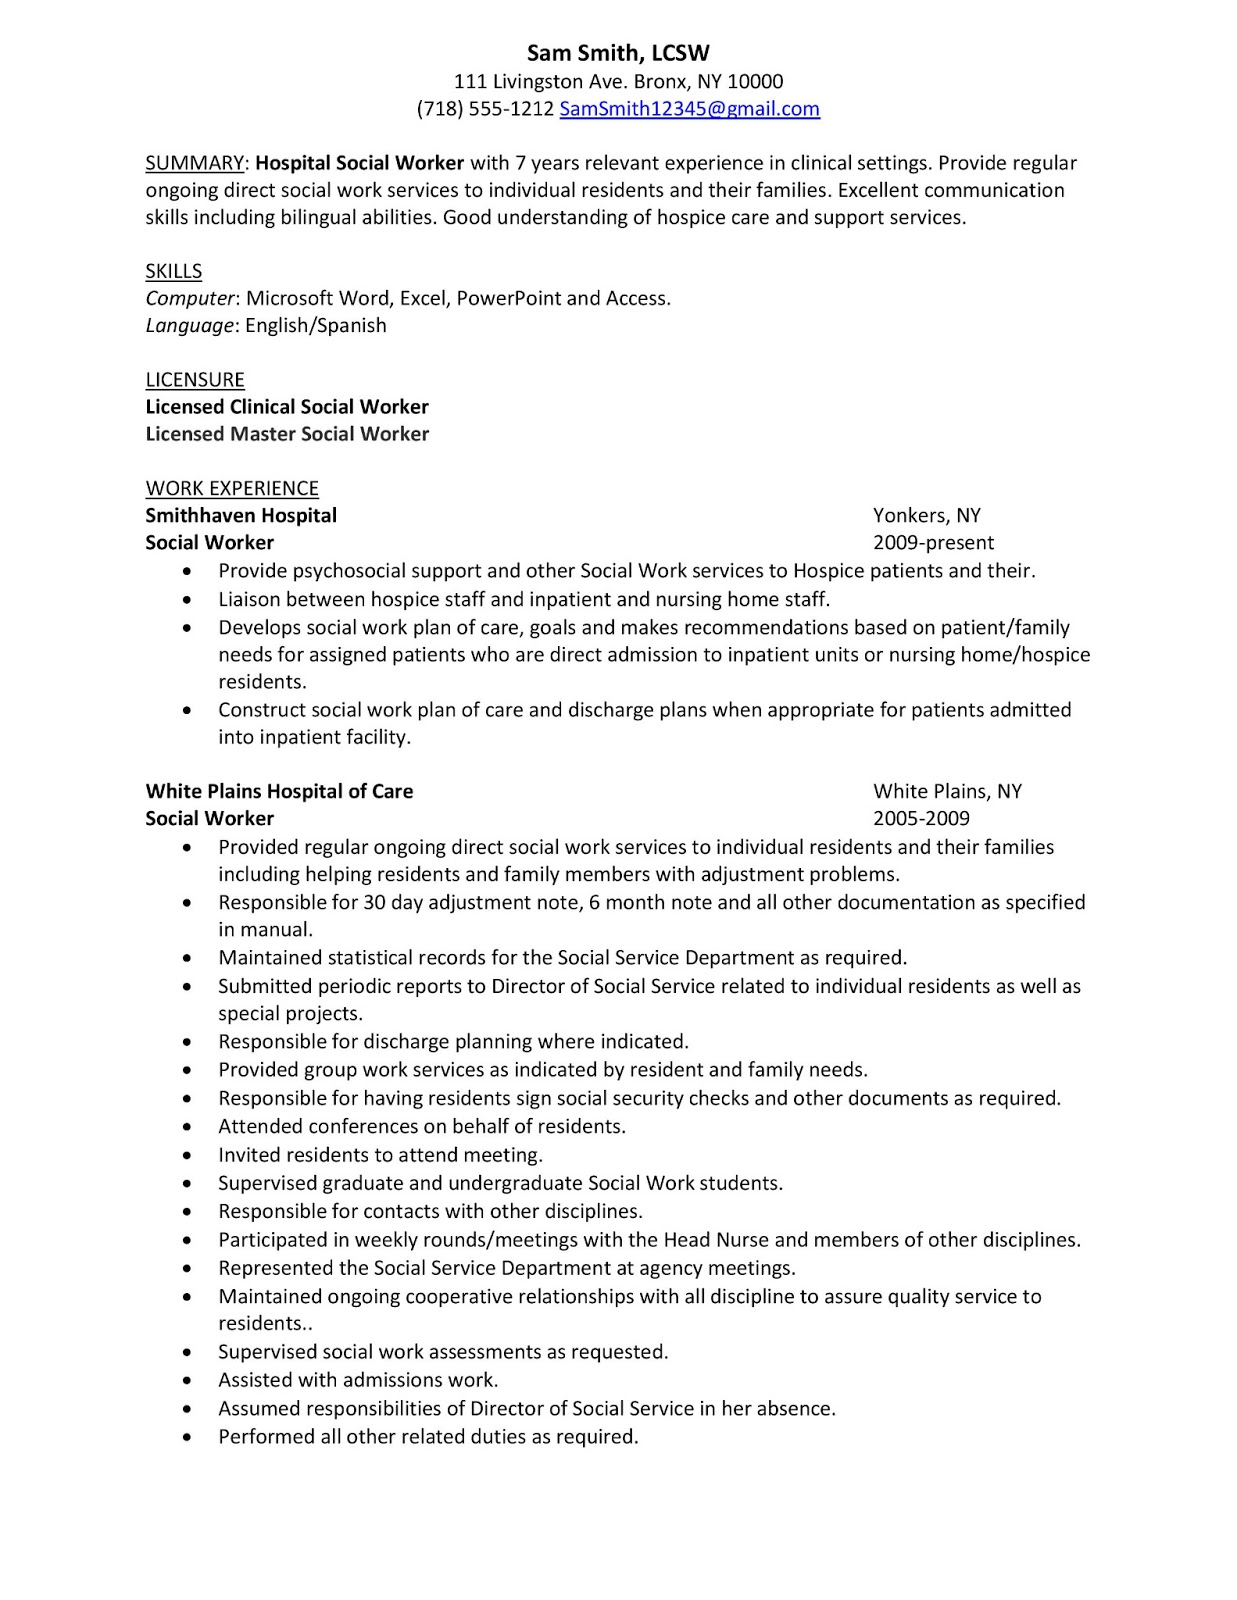 Resumes For Social Workers Sample Resume: Hospital Social Worker